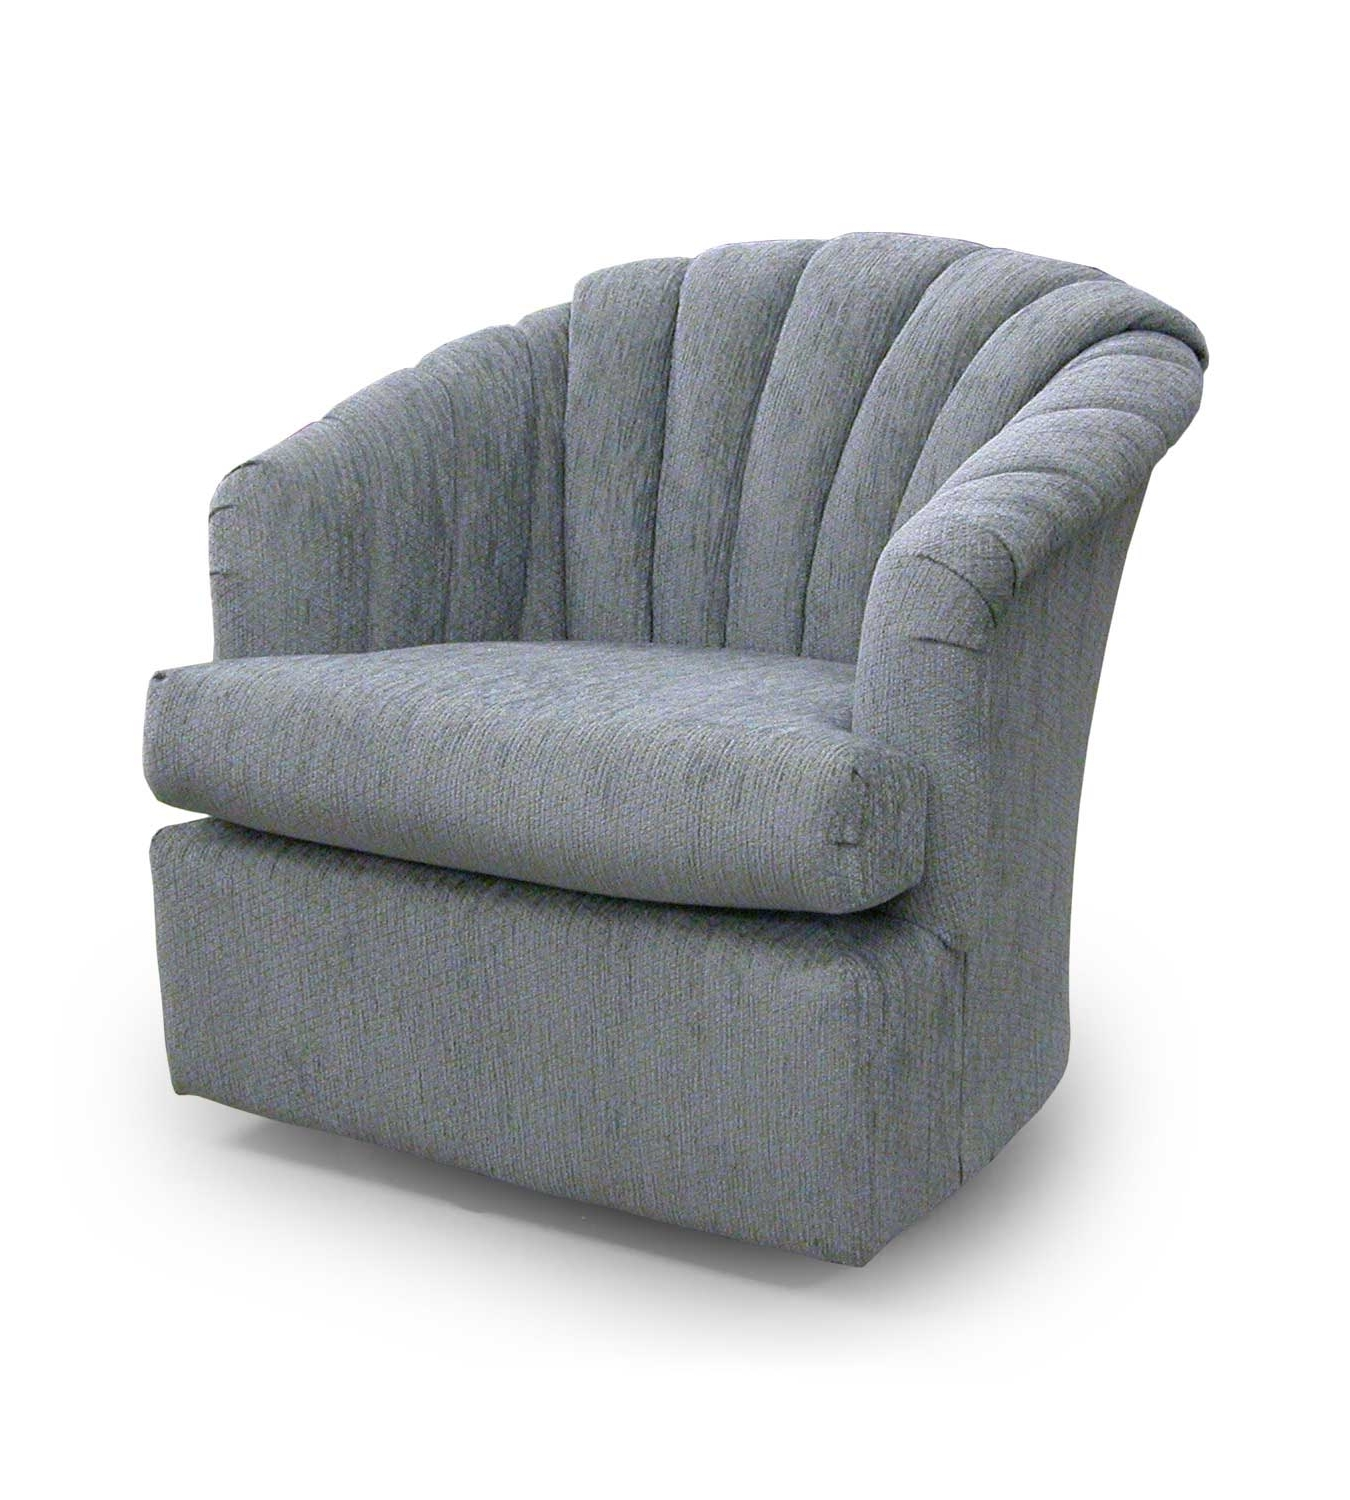 Swivel Rocking Chairs With Regard To Newest Grey Velvet Swivel Rocking Chairs With Back And Armchairs Of (View 5 of 20)